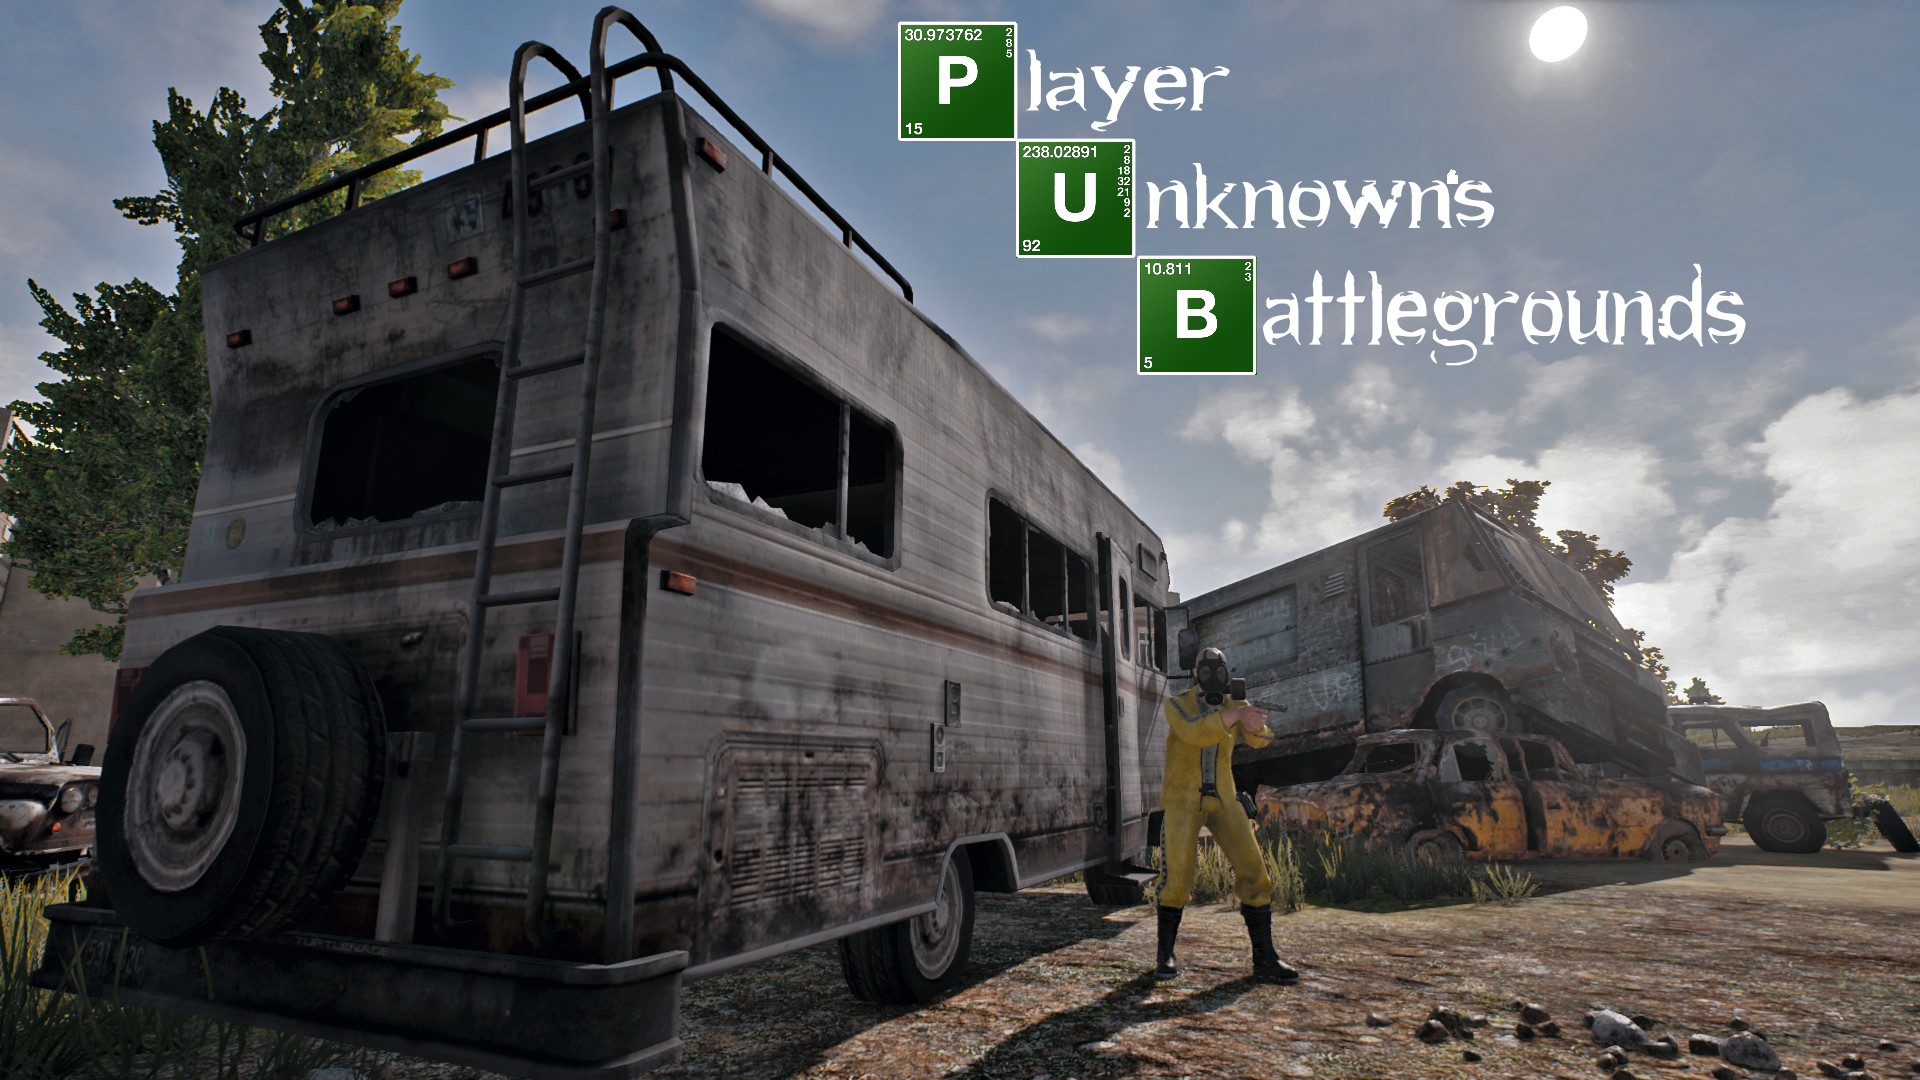 wp2208828 pubg wallpapers - Player Unknown's Battlegrounds (PUBG) 4K bus - Pubg wallpaper phone, pubg wallpaper iphone, pubg wallpaper 1920x1080 hd, pubg hd wallpapers, pubg 4k wallpapers, pubg 4k bus, Player Unknown's Battlegrounds 4k wallpapers